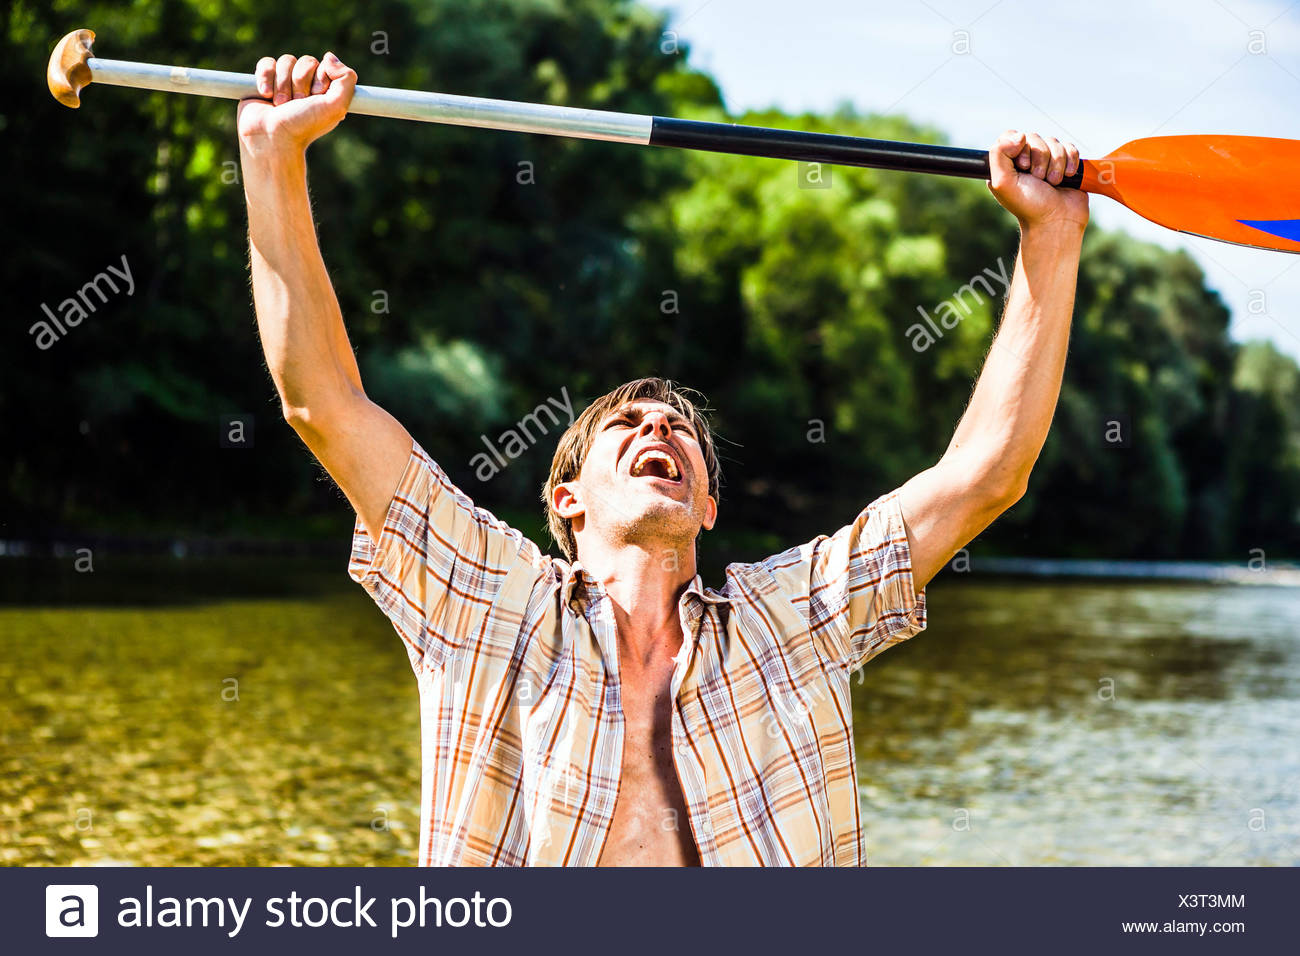 Young man cheering, a paddle in his hands, Bavaria, Germany - Stock Image